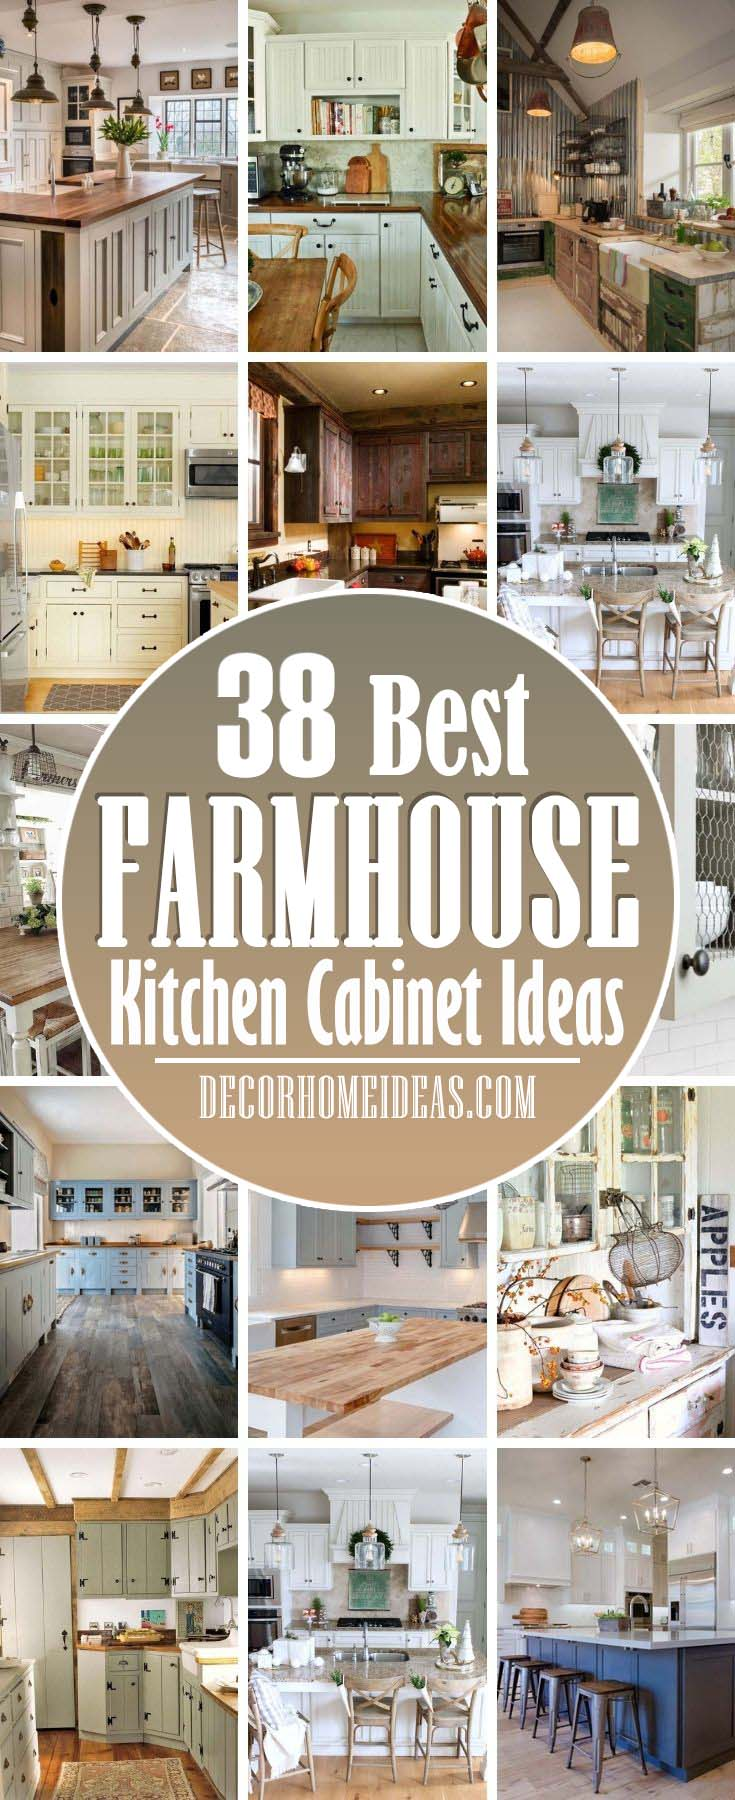 Best Farmhouse Kitchen Cabinet Ideas. If you have been considering a farmhouse kitchen for your house, you are in luck because today, we bring you these gorgeous farmhouse kitchen cabinet ideas. #decorhomeideas